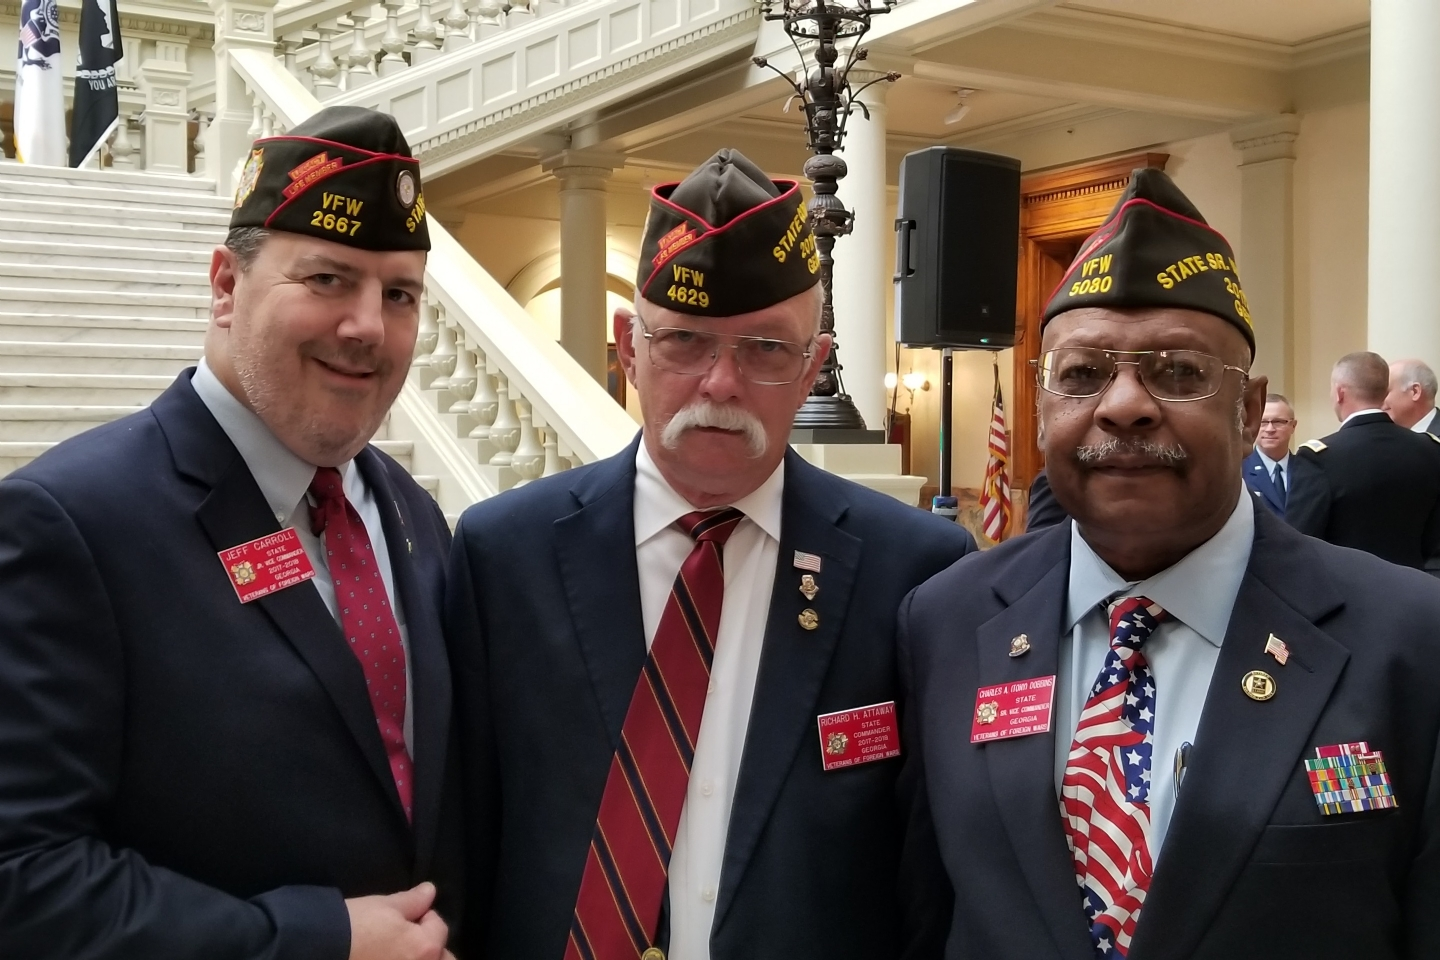 November 6, 2017 - Atlanta. L-R State Jr Vice Commander Jeff Carroll, State Commander Richard Attaway, State Sr Vice Commander Tony Dobbins at the State Capitol.